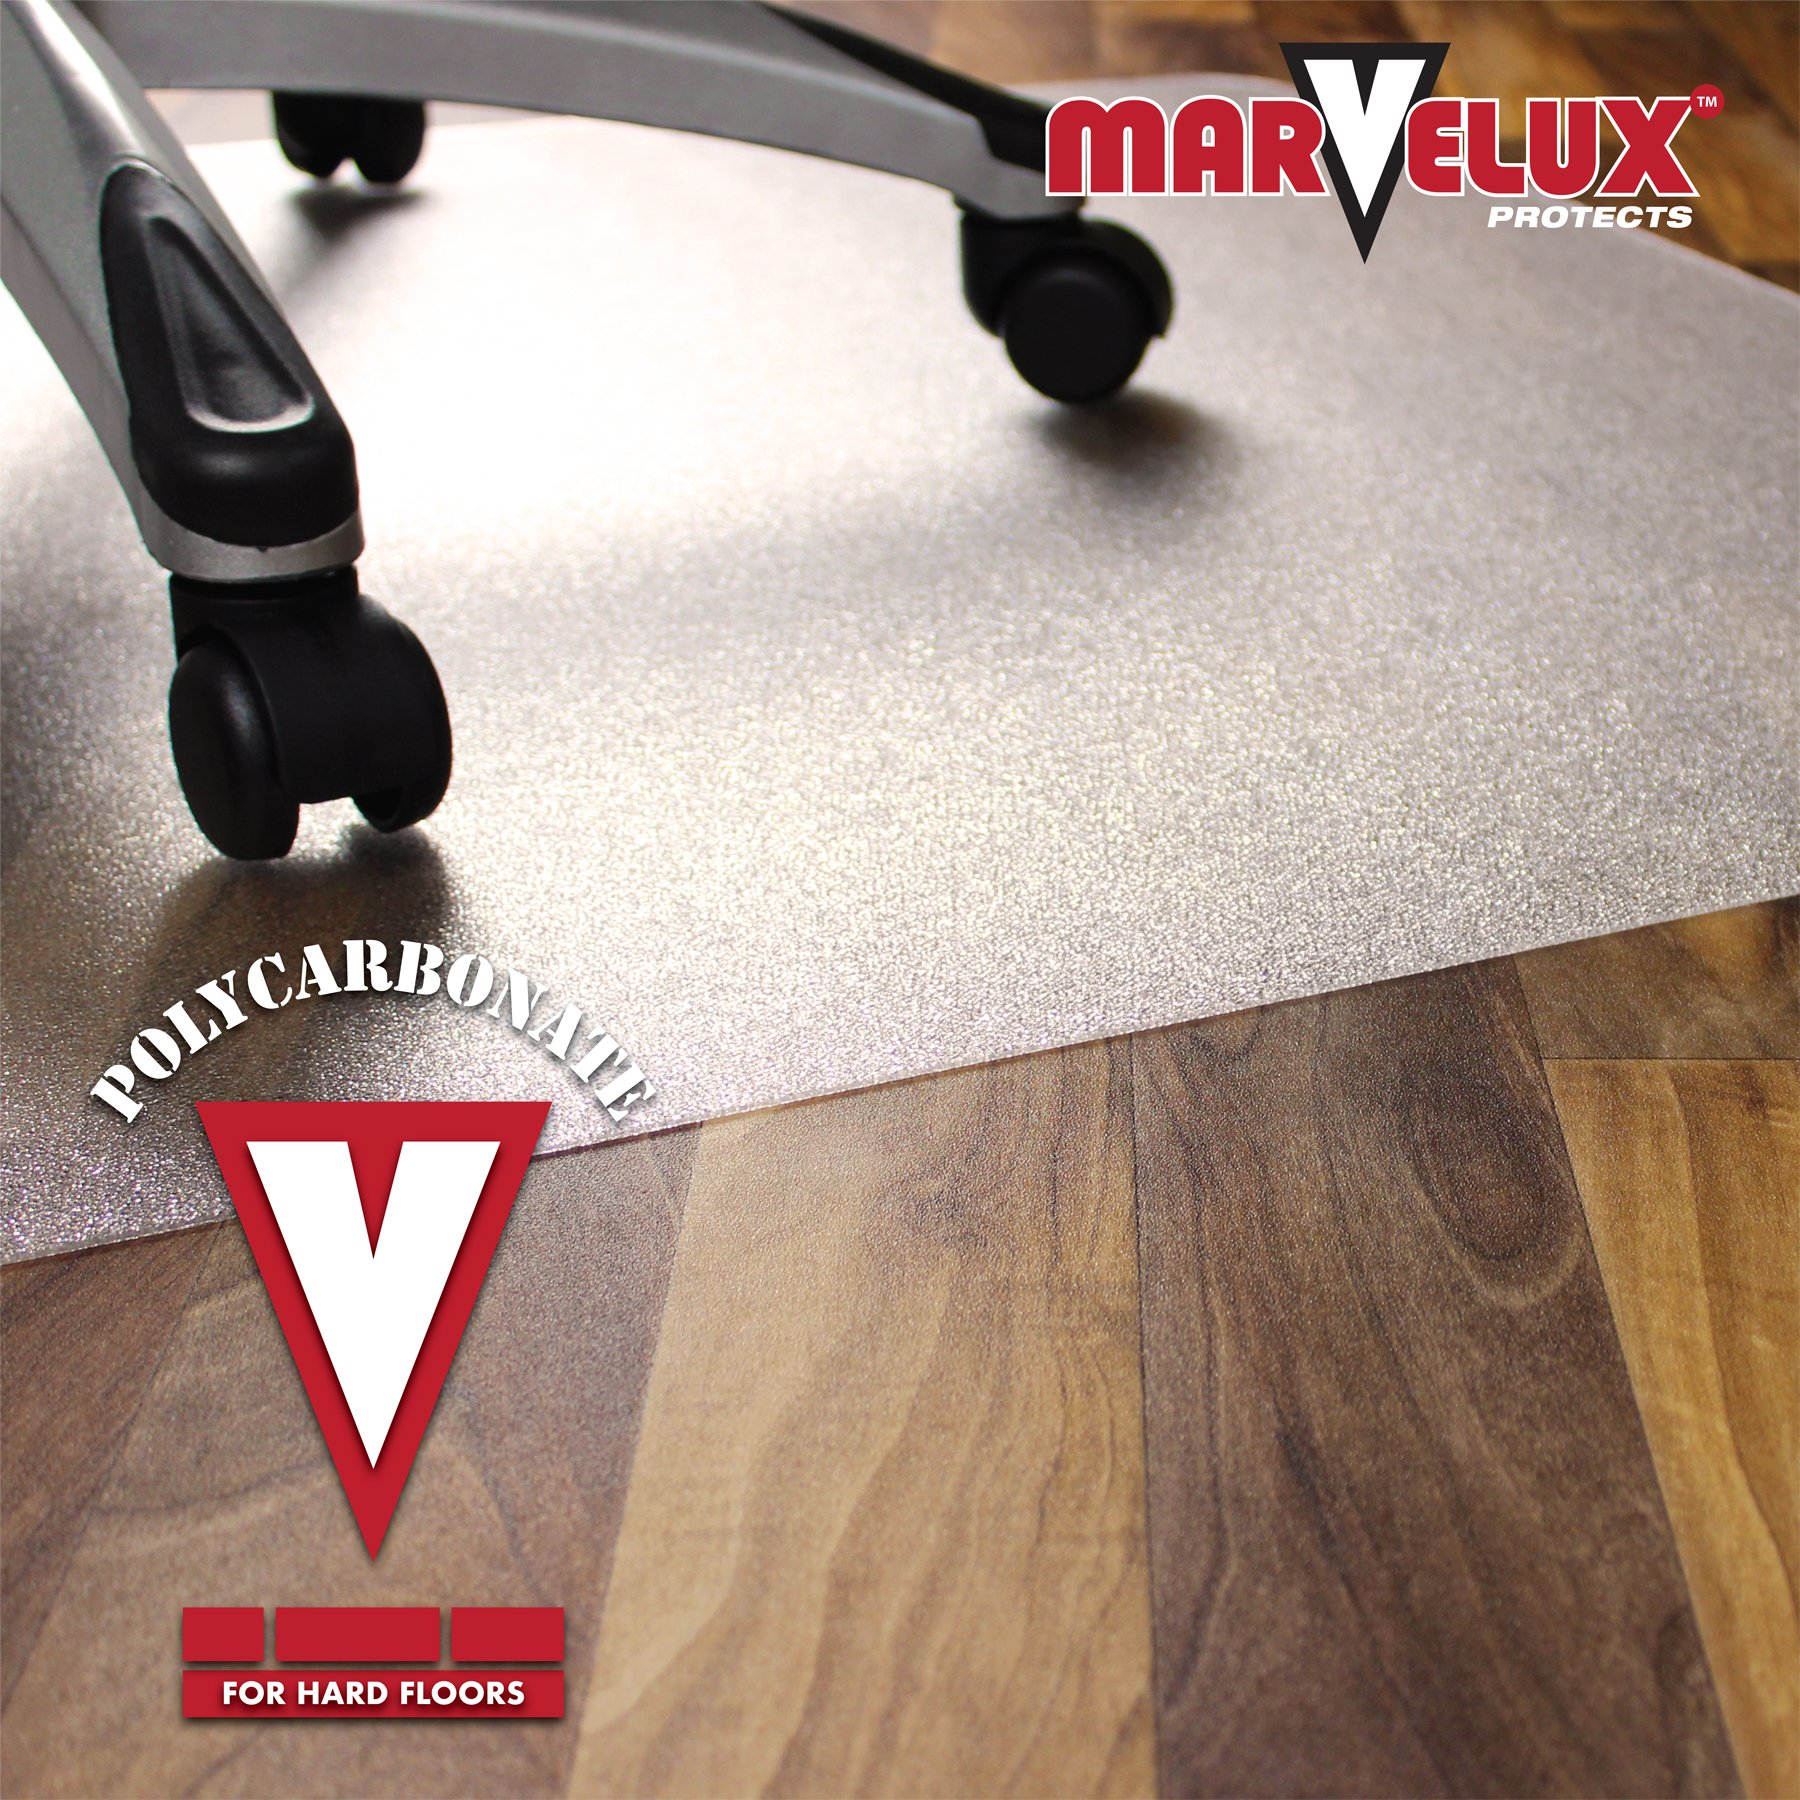 Marvelux 48'' x 60'' Heavy Duty Polycarbonate (PC) Rectangular Chair Mat for Hard Floors | Transparent Hardwood Floor Protector | Multiple Sizes by Marvelux (Image #2)